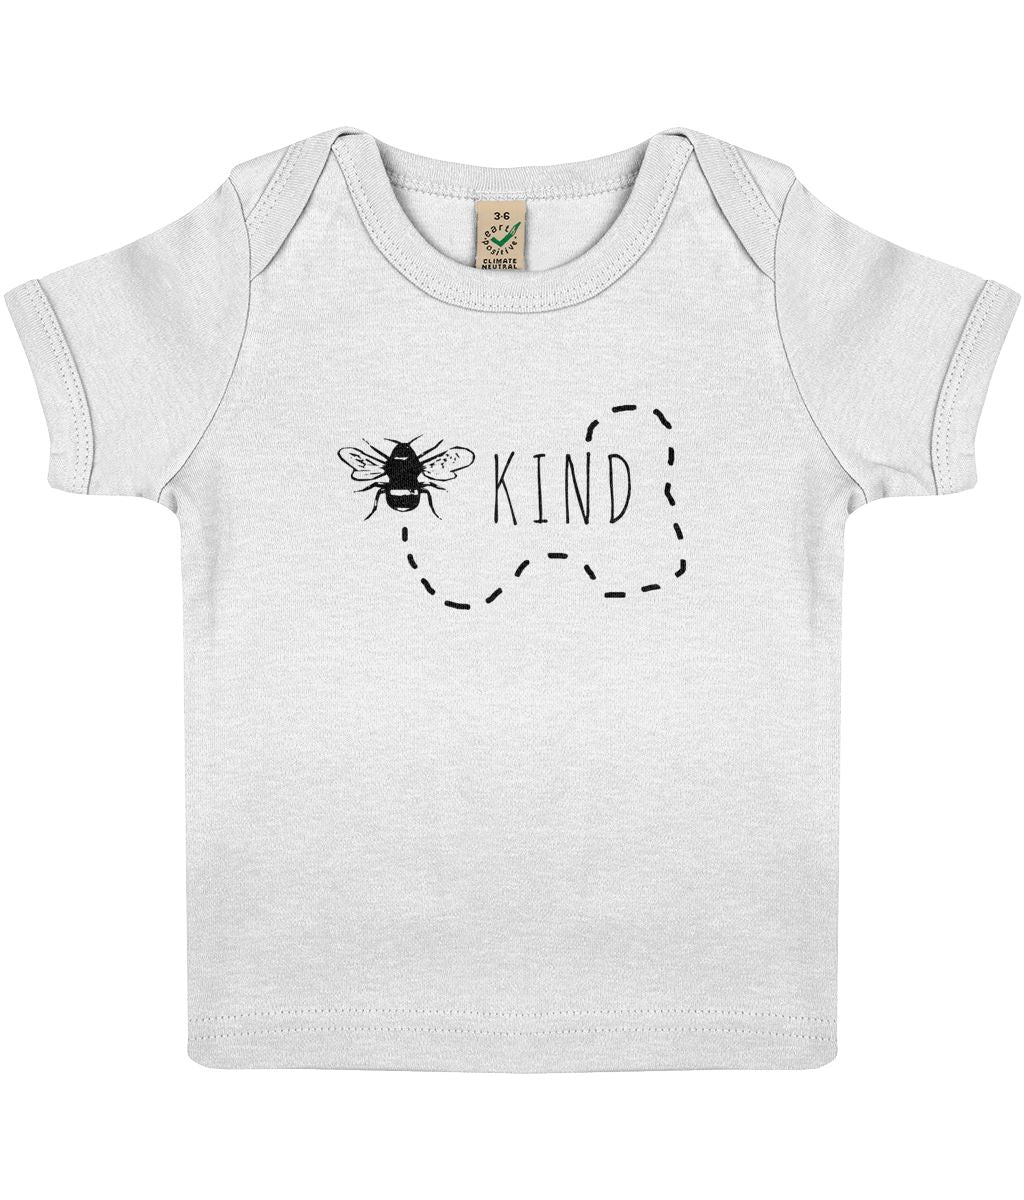 """Bee Kind"" Baby Lap Vegan T-Shirt Clothing Vegan Original 3-6 months White"